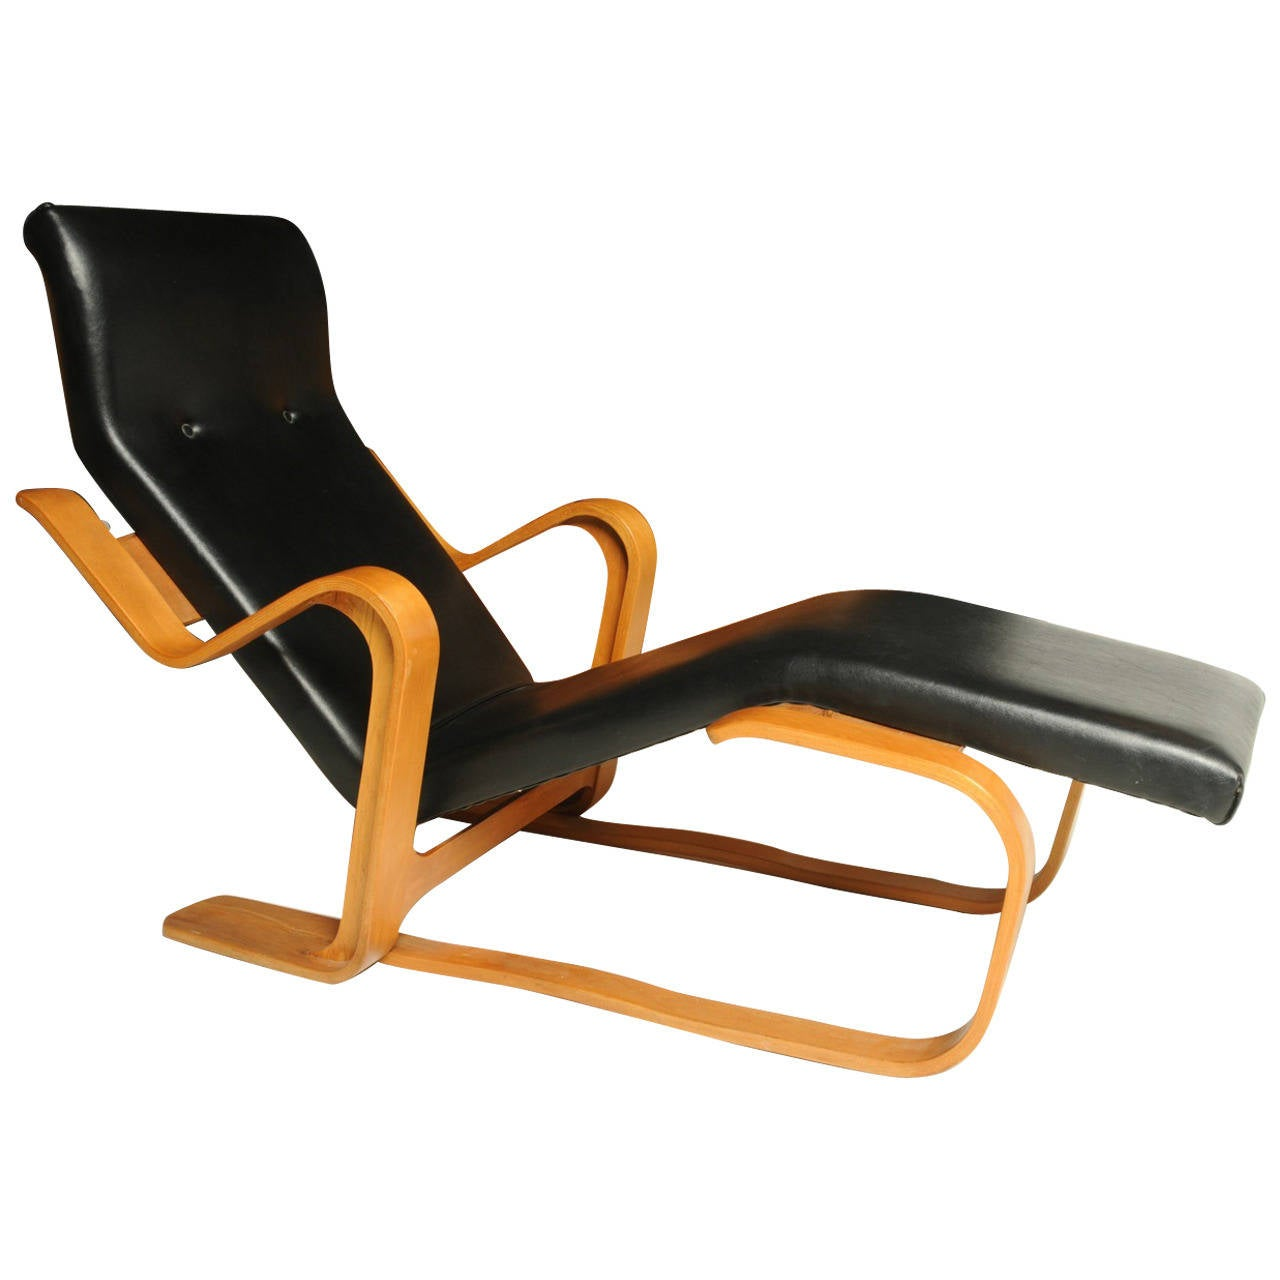 early marcel breuer long chaise for sale at 1stdibs. Black Bedroom Furniture Sets. Home Design Ideas